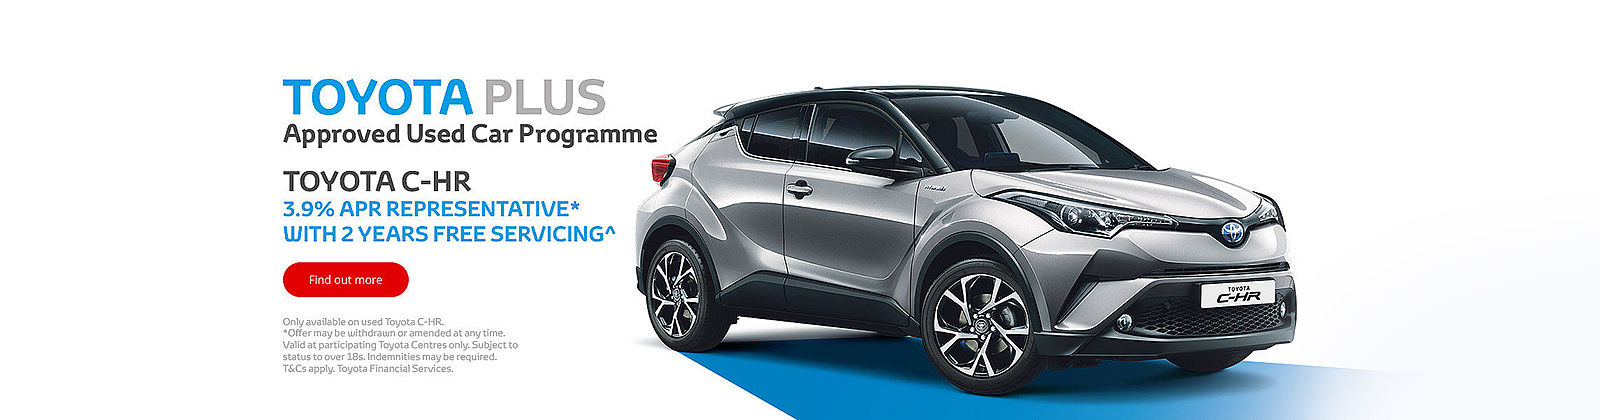 TOYOTA PLUS. MORE ASSURANCE. MORE ENJOYMENT. APPROVED. TOYOTA PLUS is the used car programme that selects, checks and guarantees the best used cars, giving you complete peace of mind.